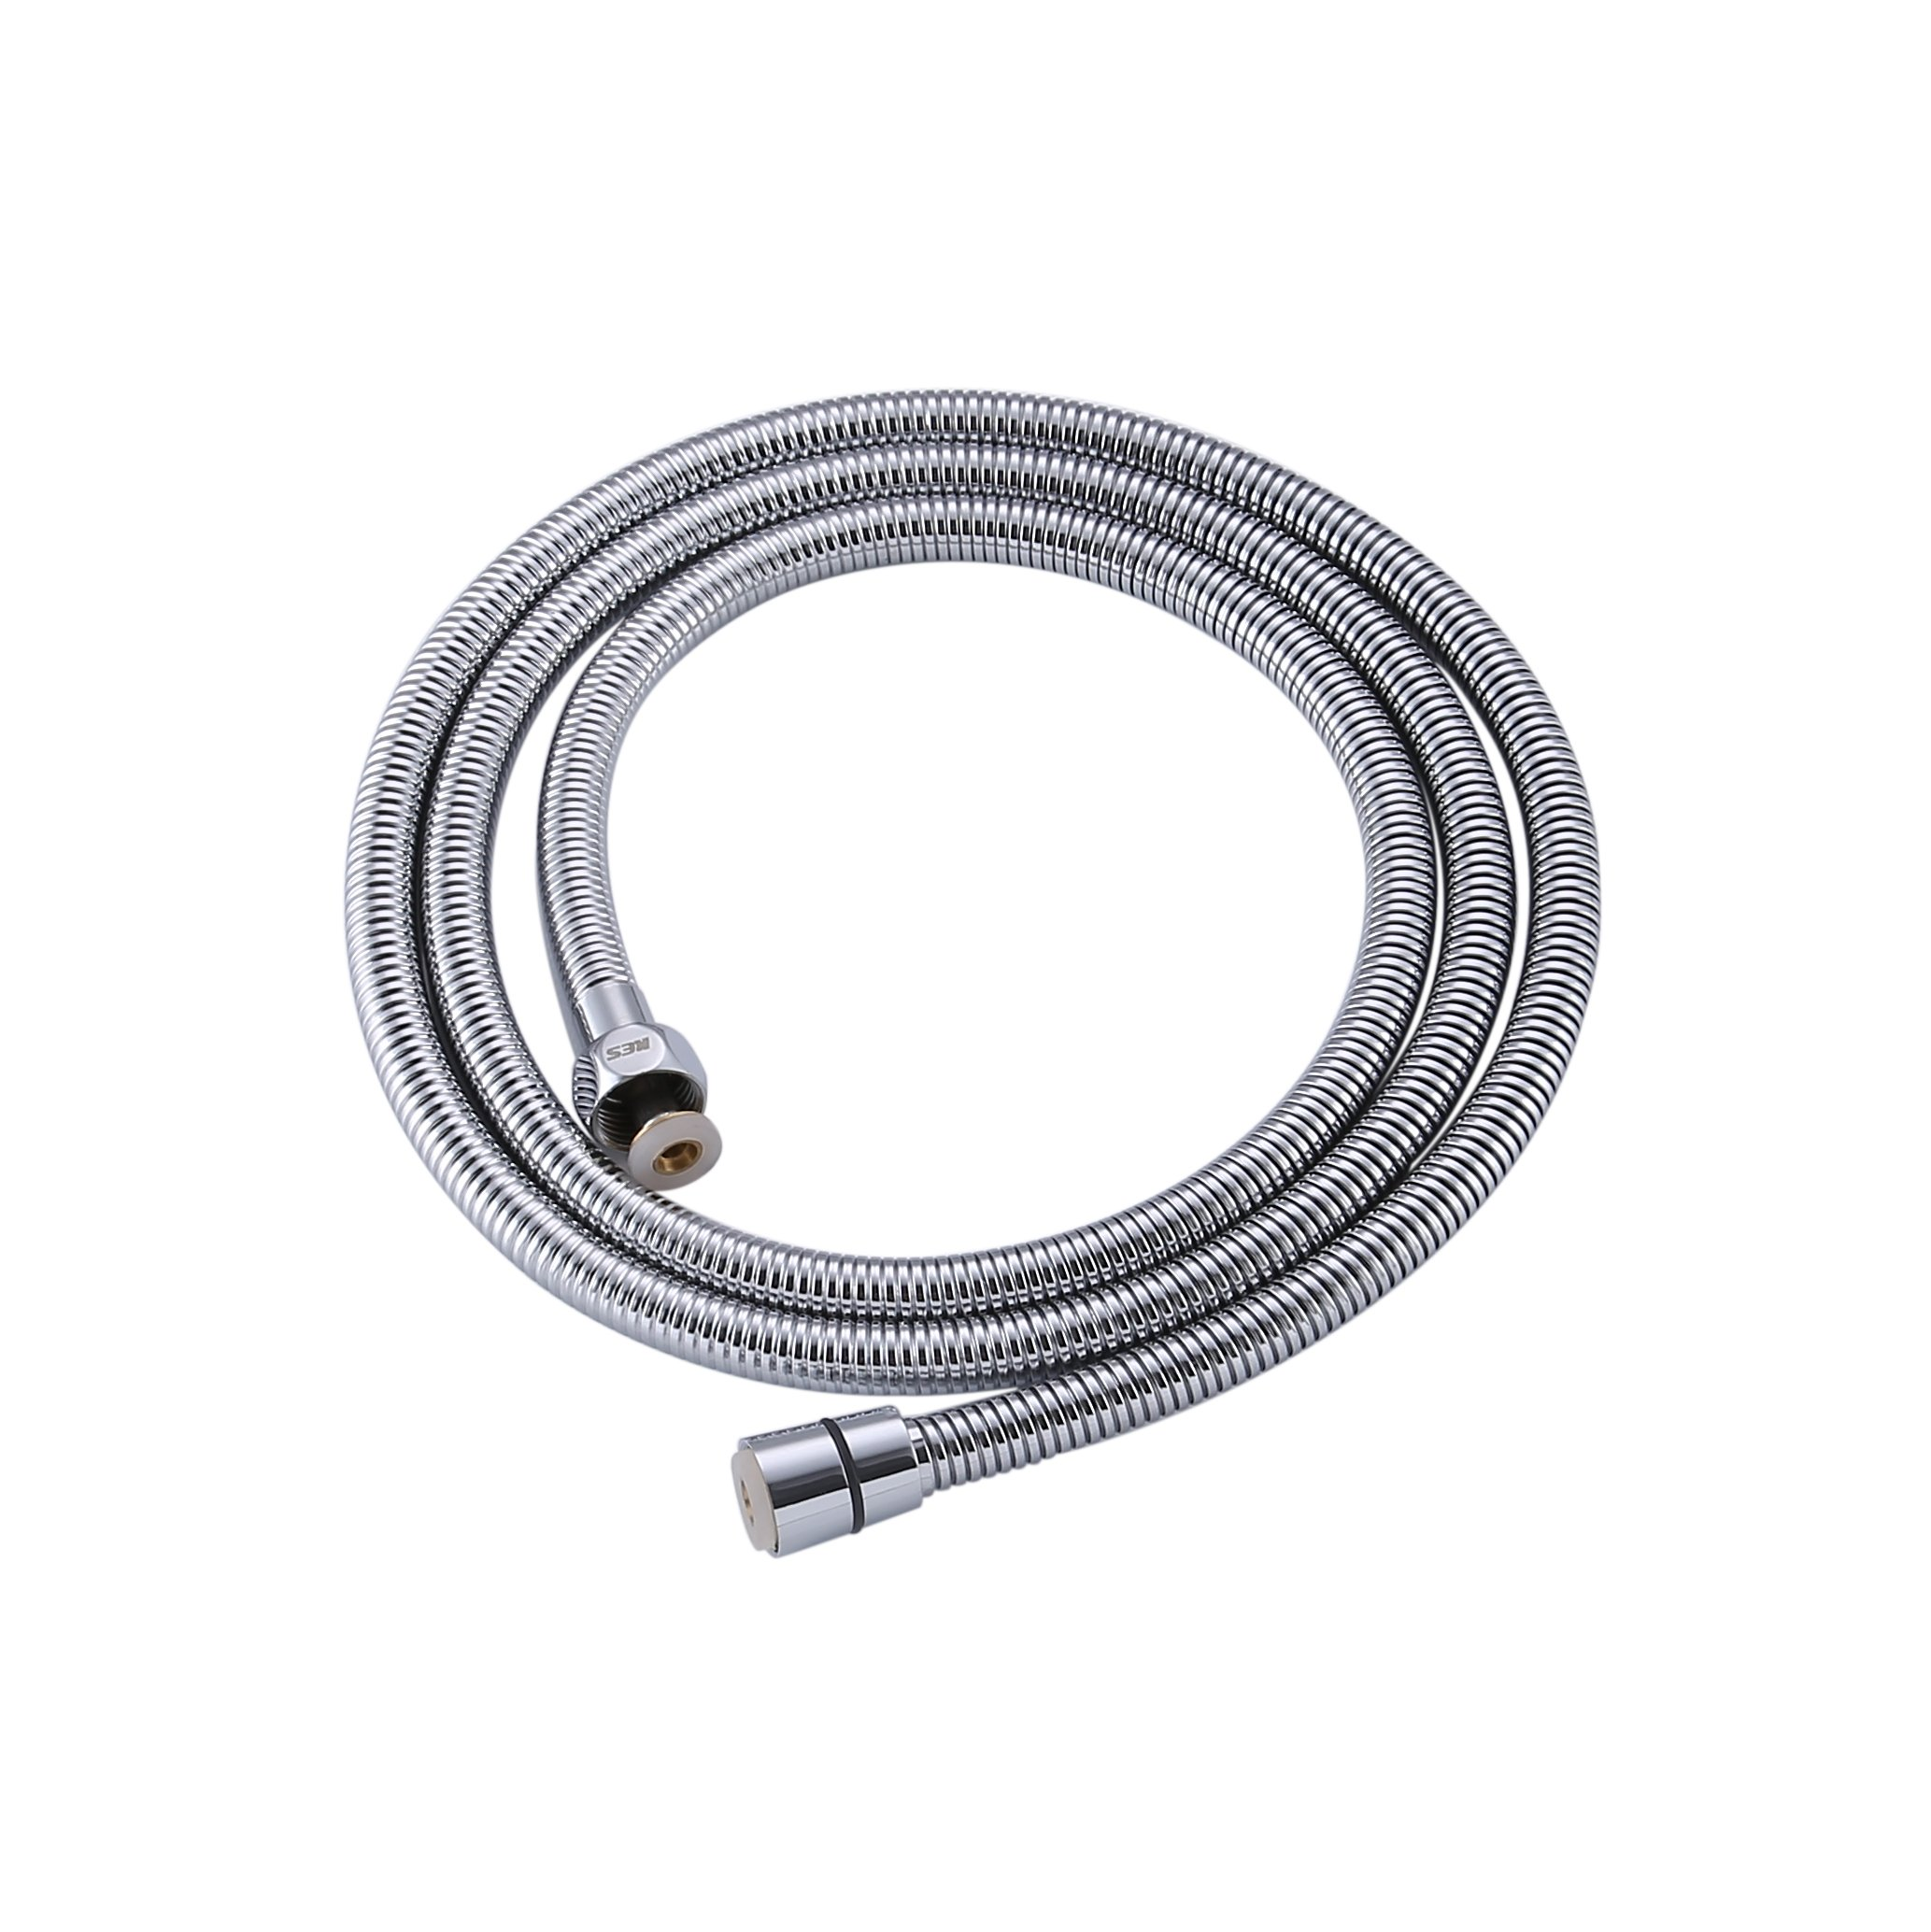 KES I8150 Bathroom Replacement Shower Hose Reinforced High Pressure 5 Ft or 1.5 Meter Stainless Steel Interlock for Shower Head/Bidet Sprayer, Chrome